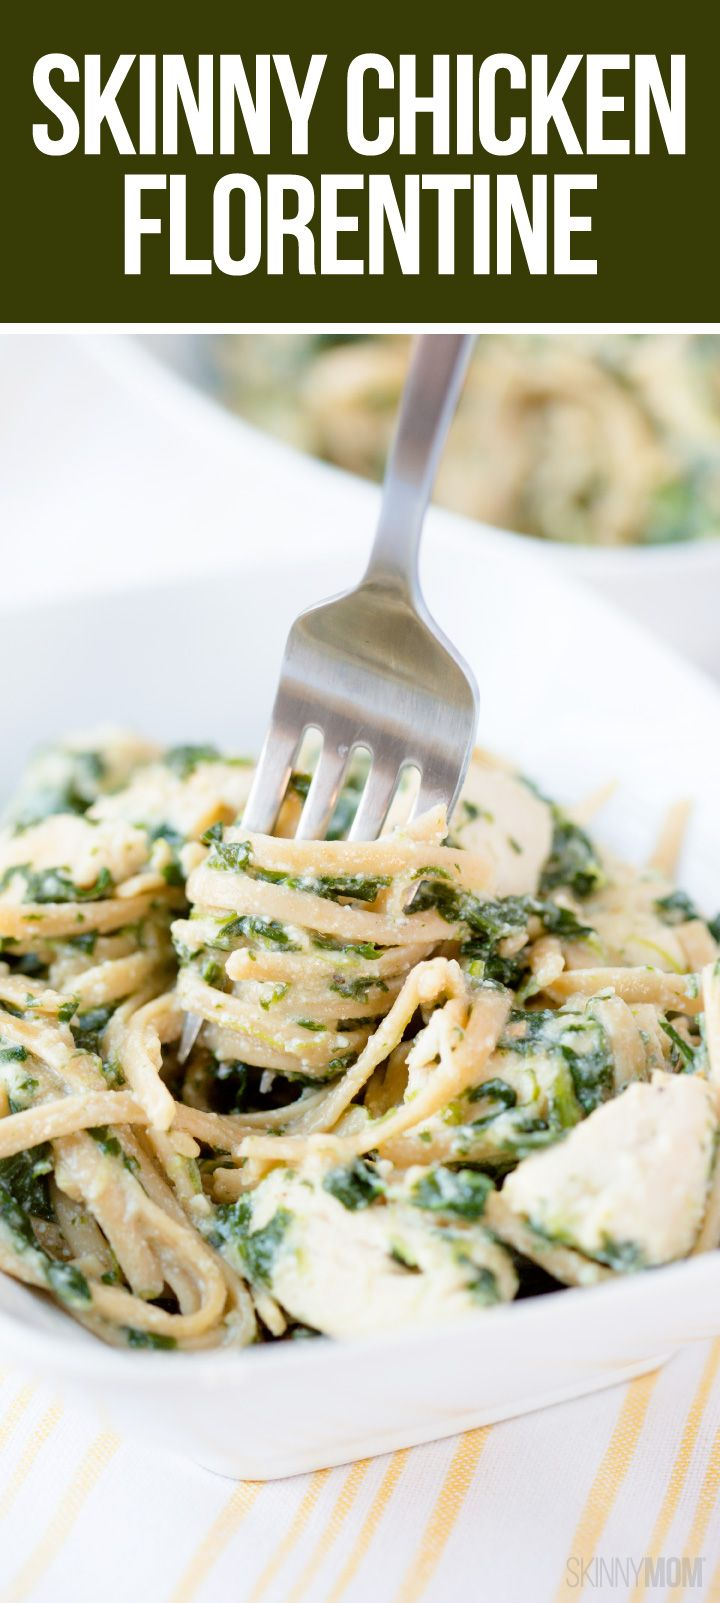 Skinny Chicken Florentine: a healthy pasta dish for the family.